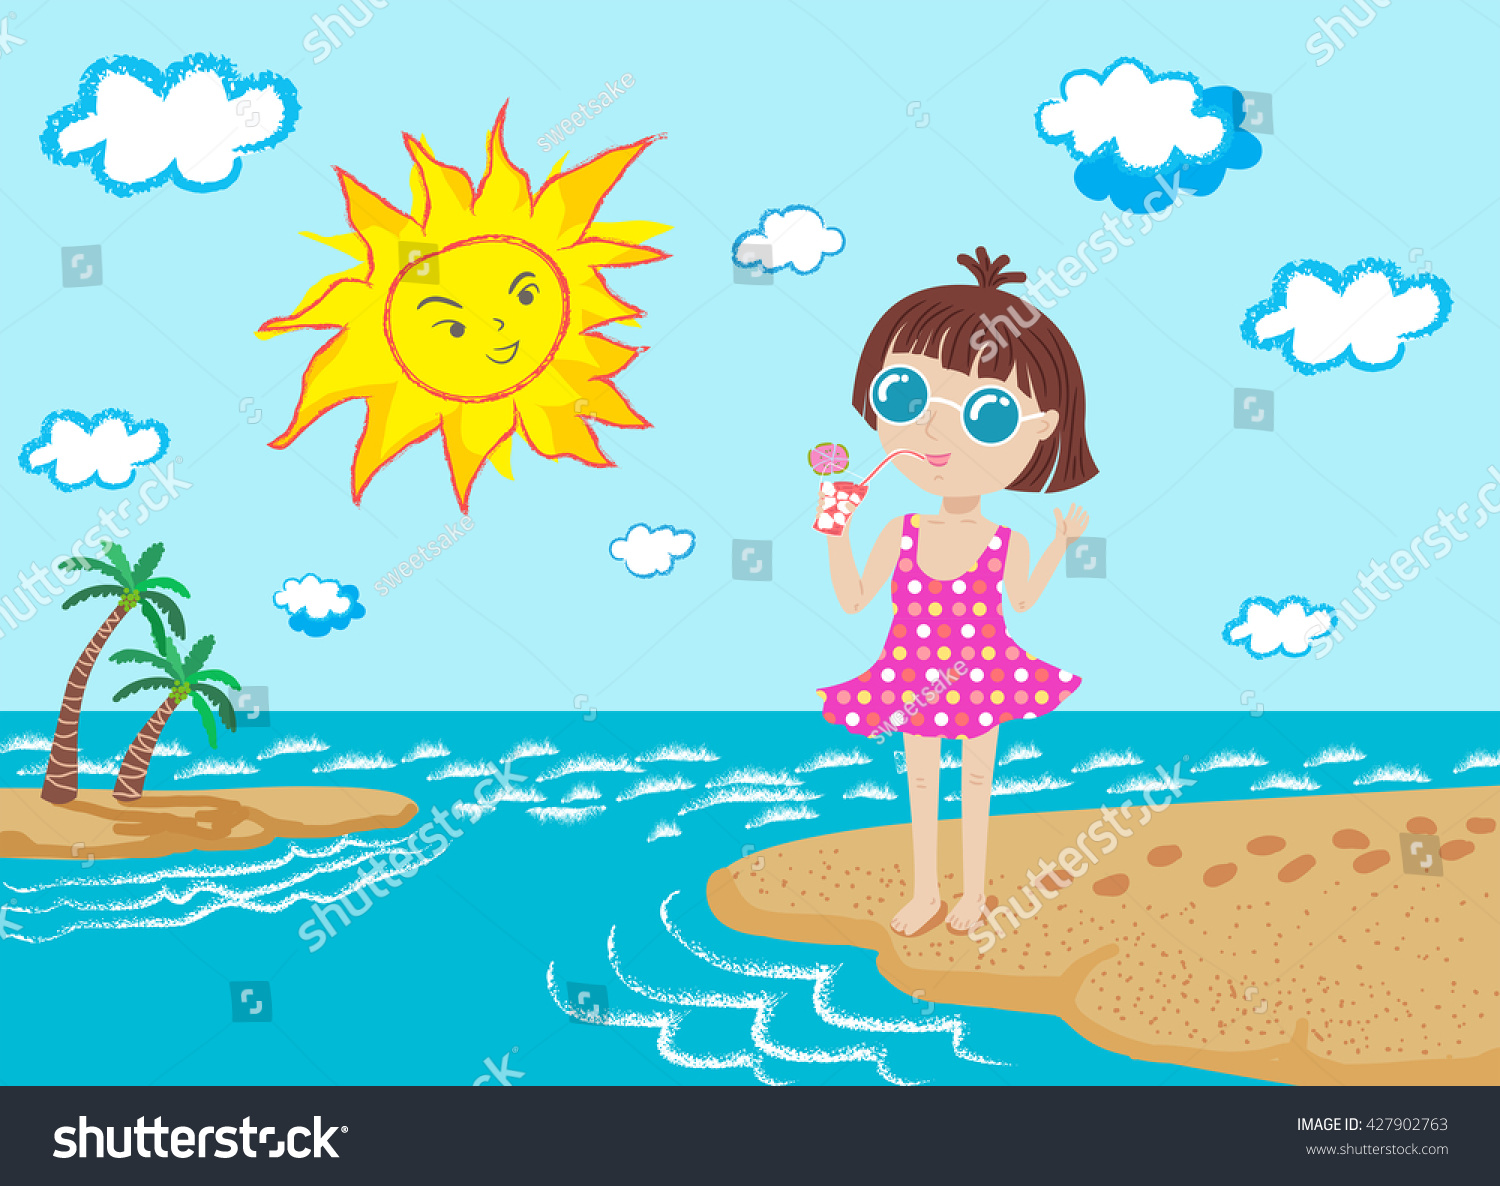 Happy Girl Sun On Beach Vector Stock Vector (Royalty Free) 427902763.